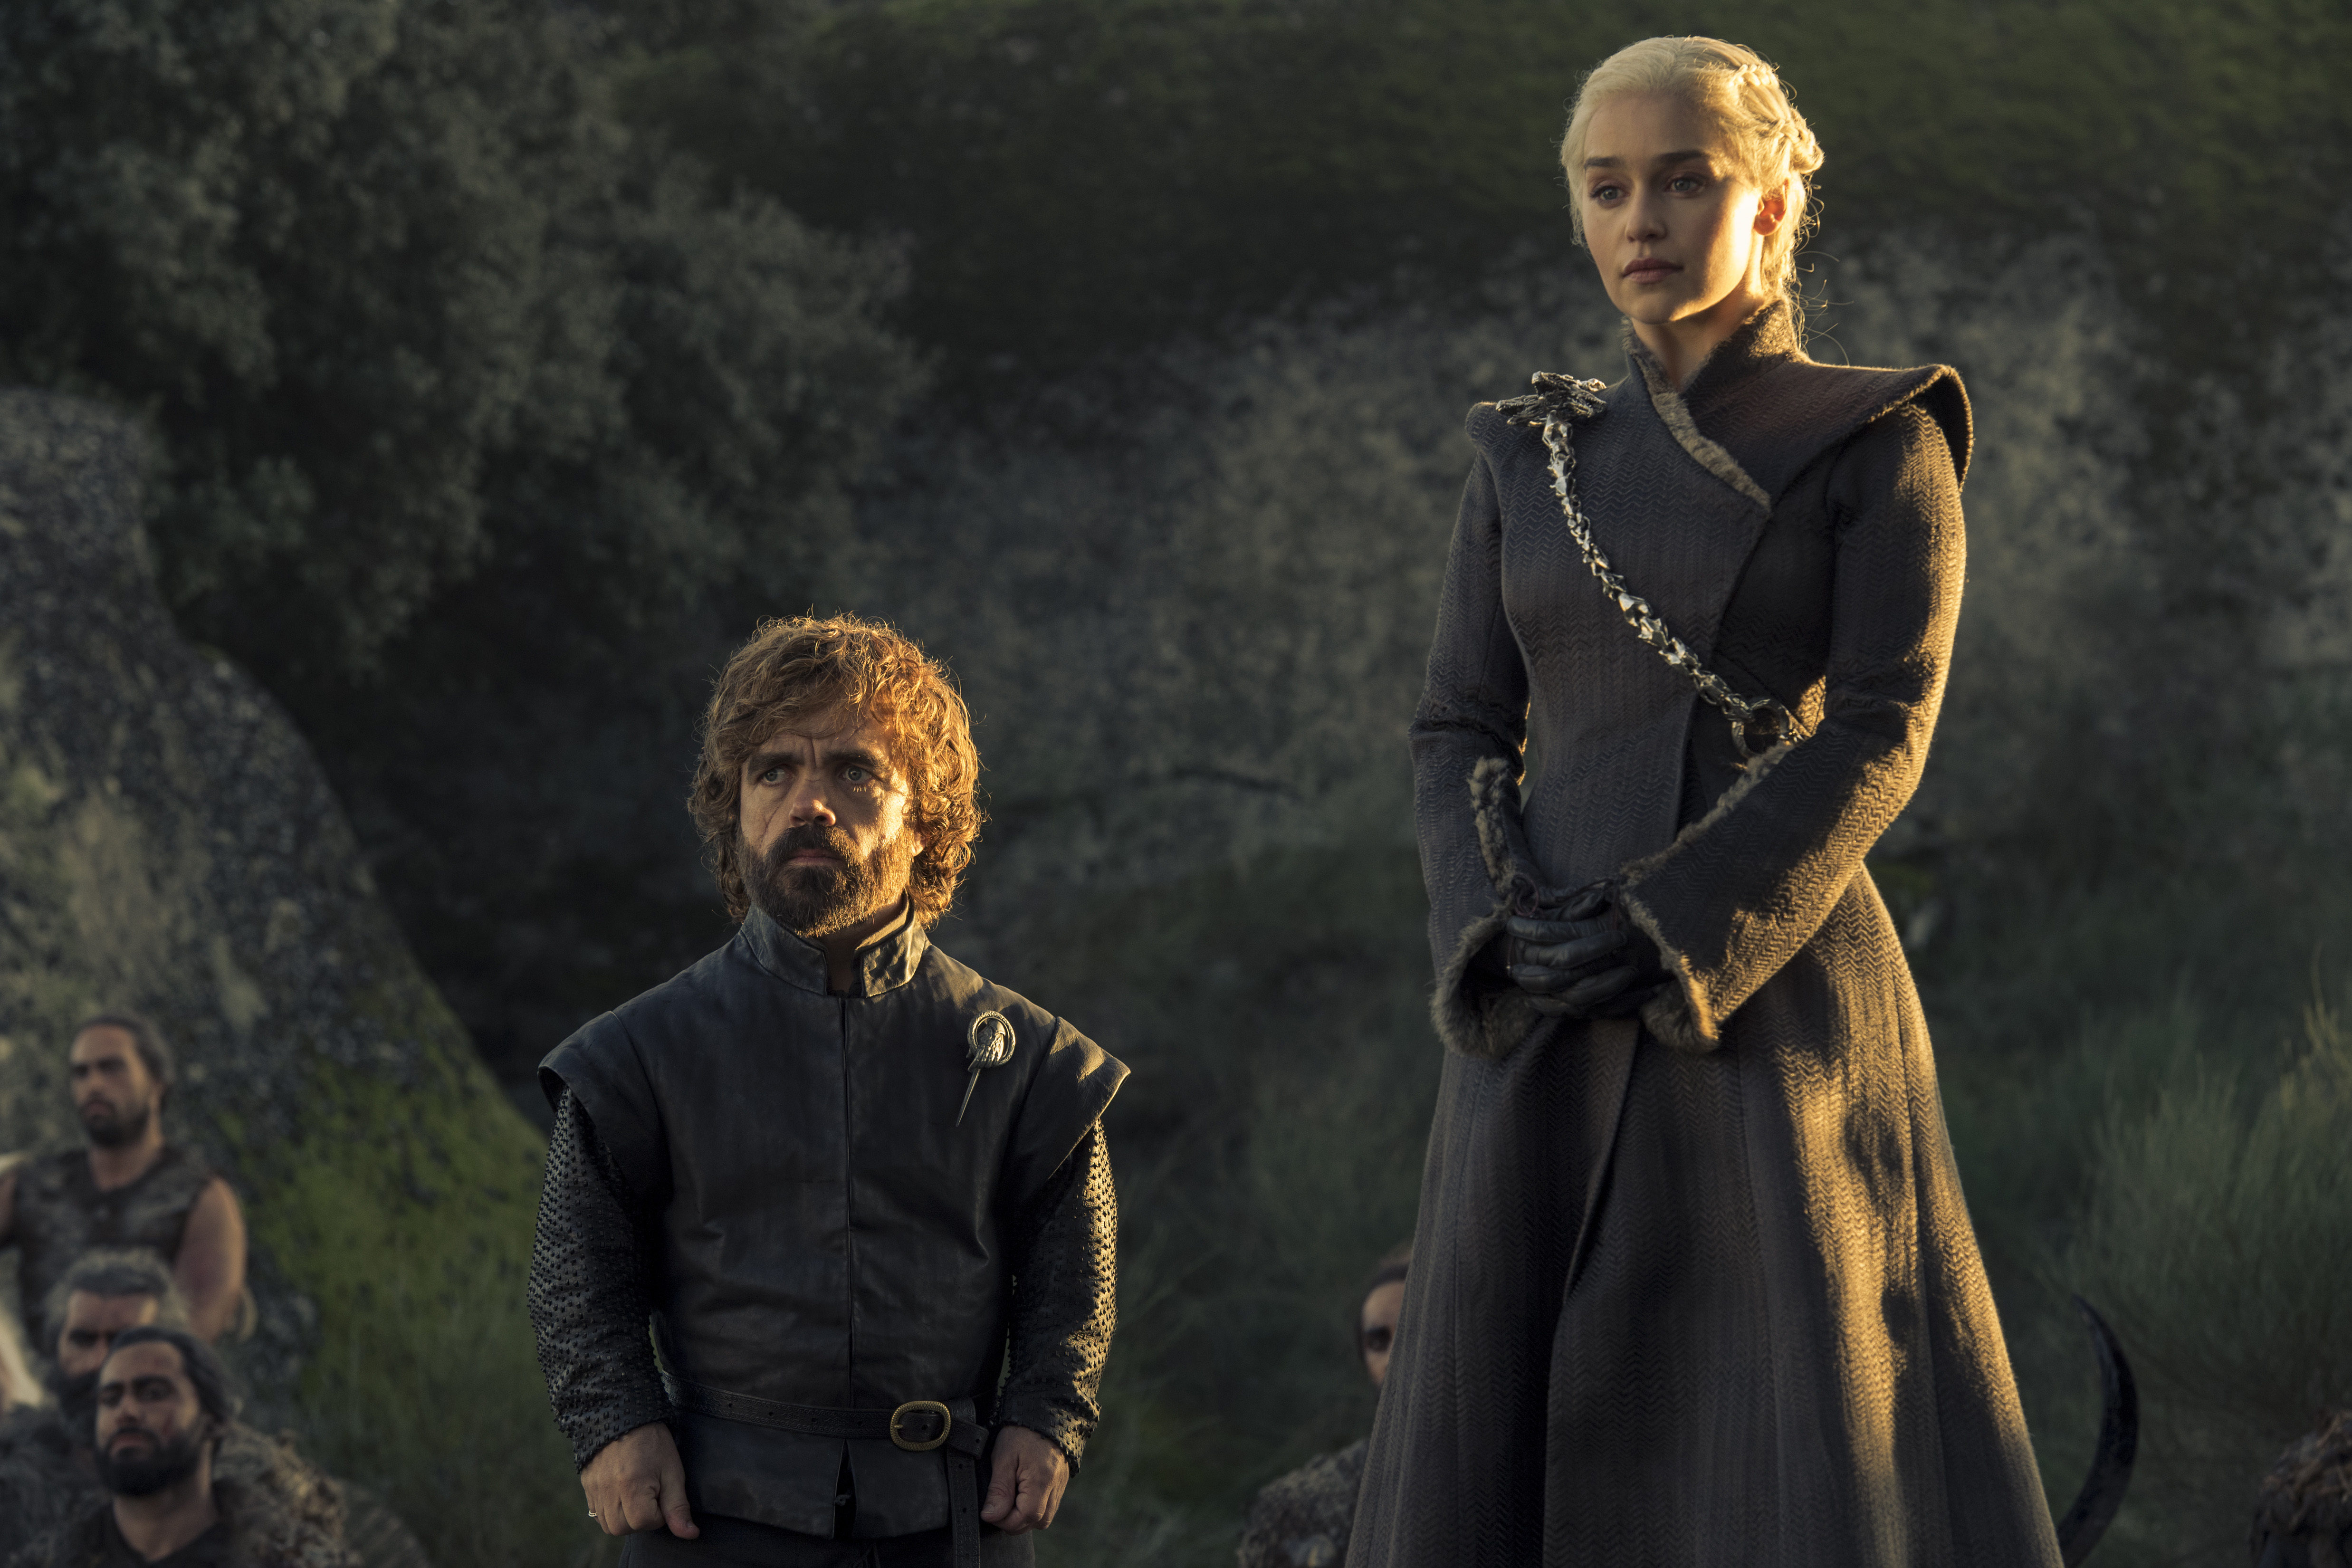 Game of Thrones 705 - Tyrion and Dany standing in front of prisoners of war